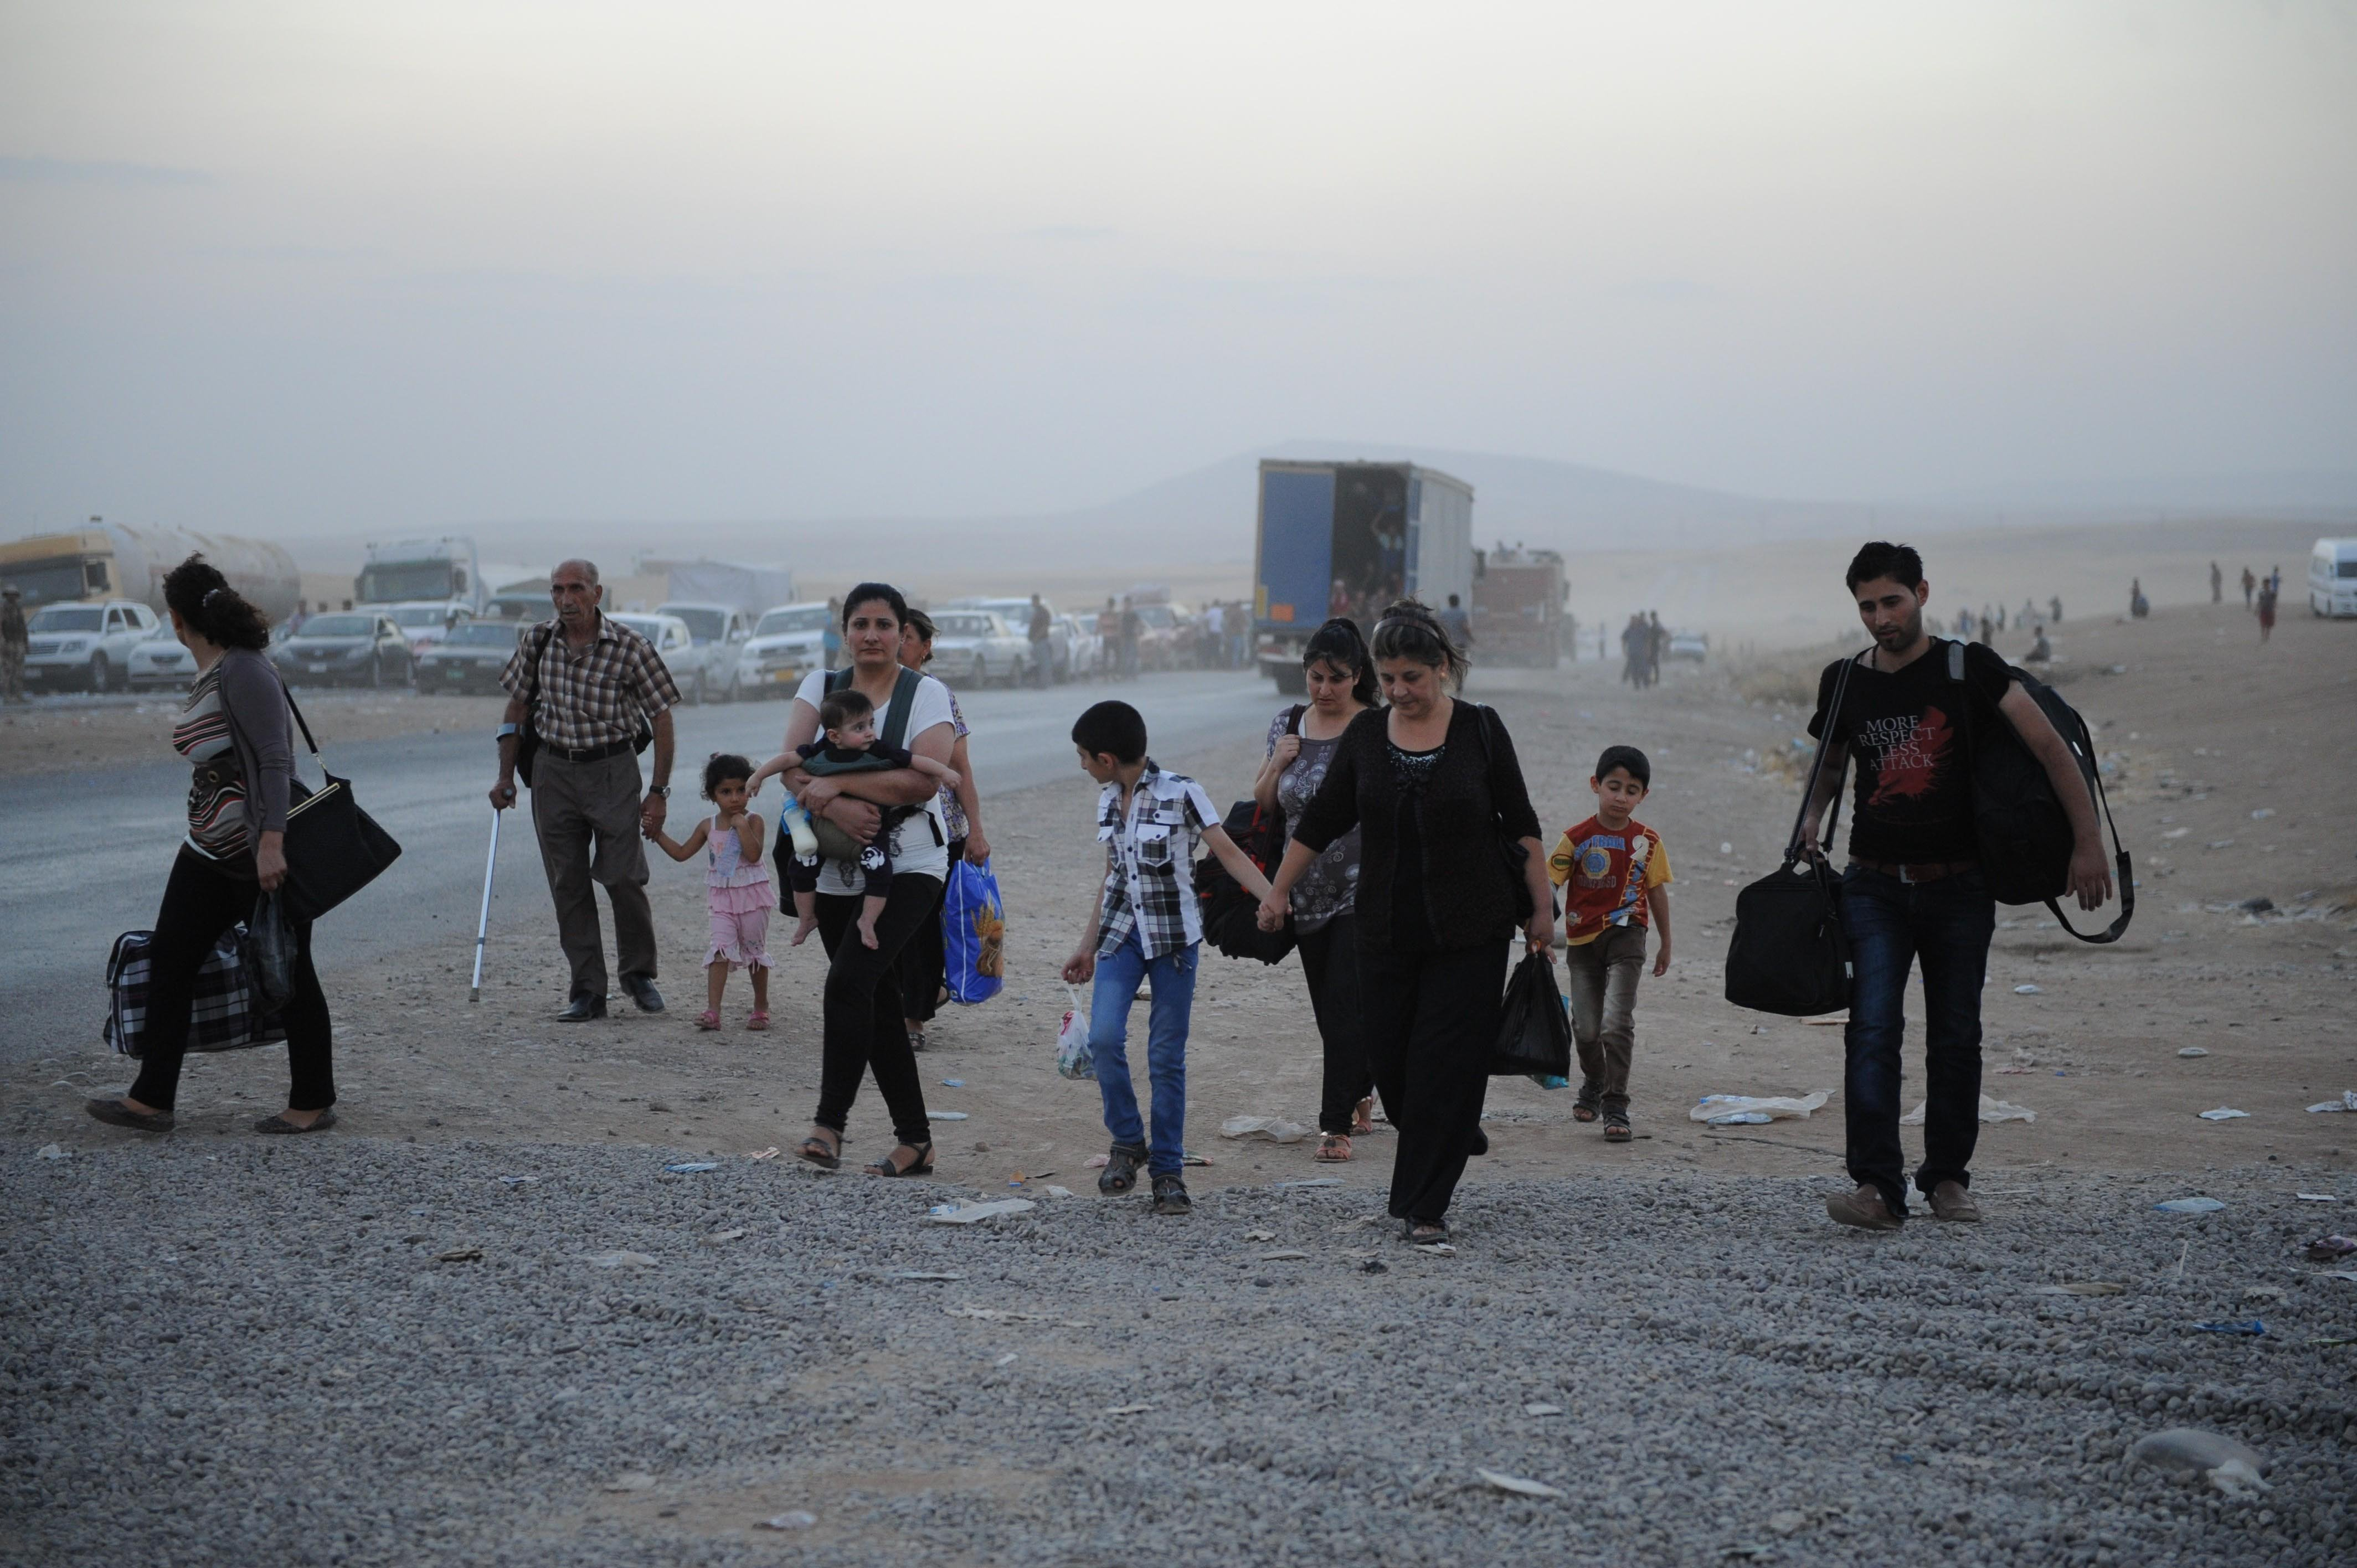 Thousands of Yazidi and Christian people flee Hamdaniyah town of Mosul to Erbil after the latest wave of ISIL advances that began on Sunday has seen a number of towns near Iraq's second largest city Mosul fall to the militants on August 6, 2014.